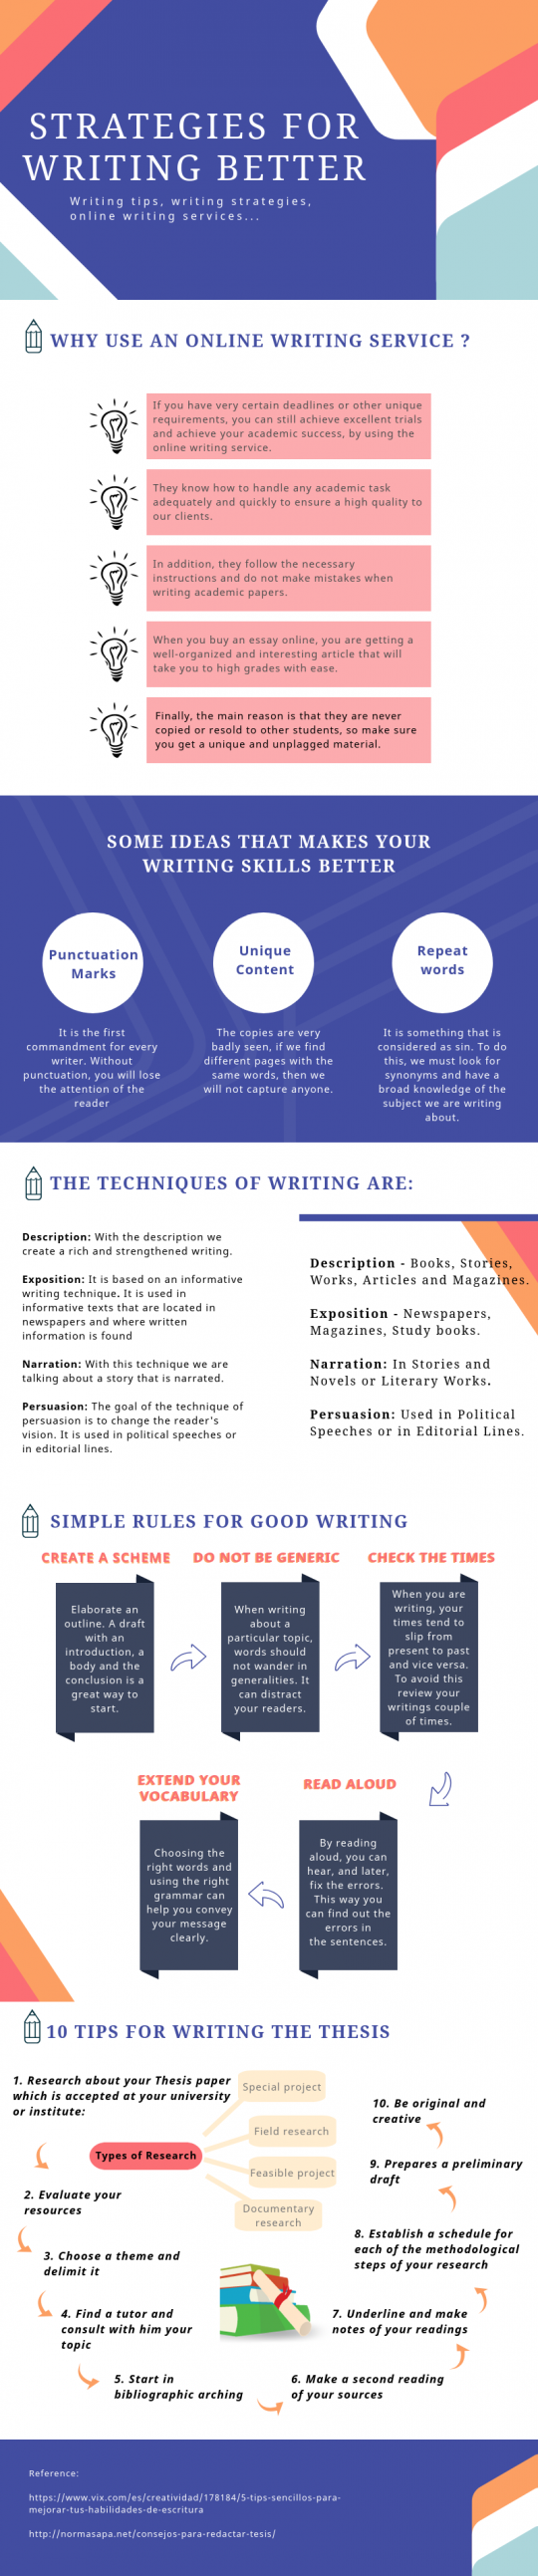 Strategies for writing better